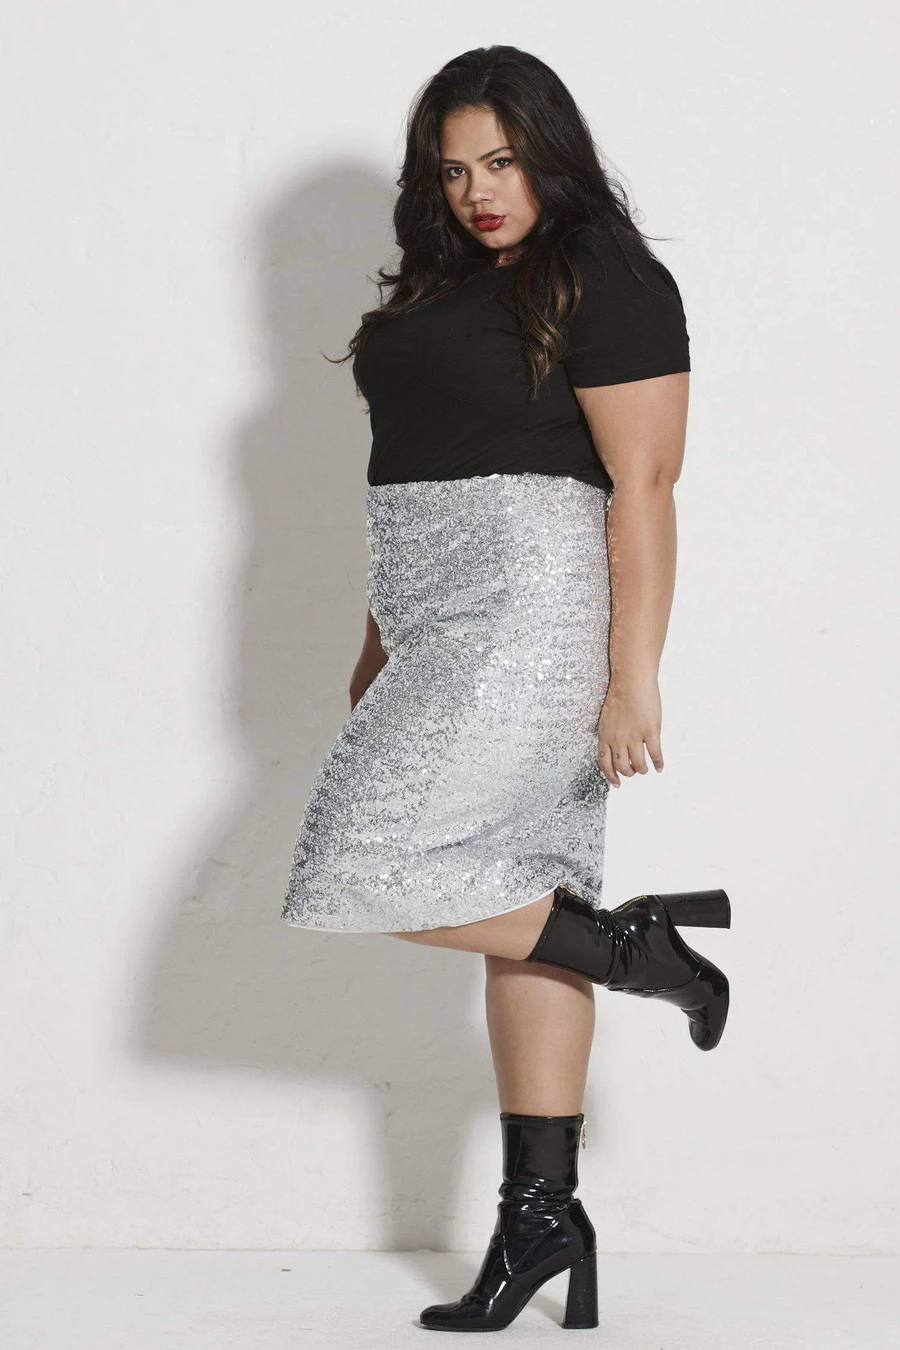 Stretch Sequin Skirt Silver HUR SQUAD womensfashion